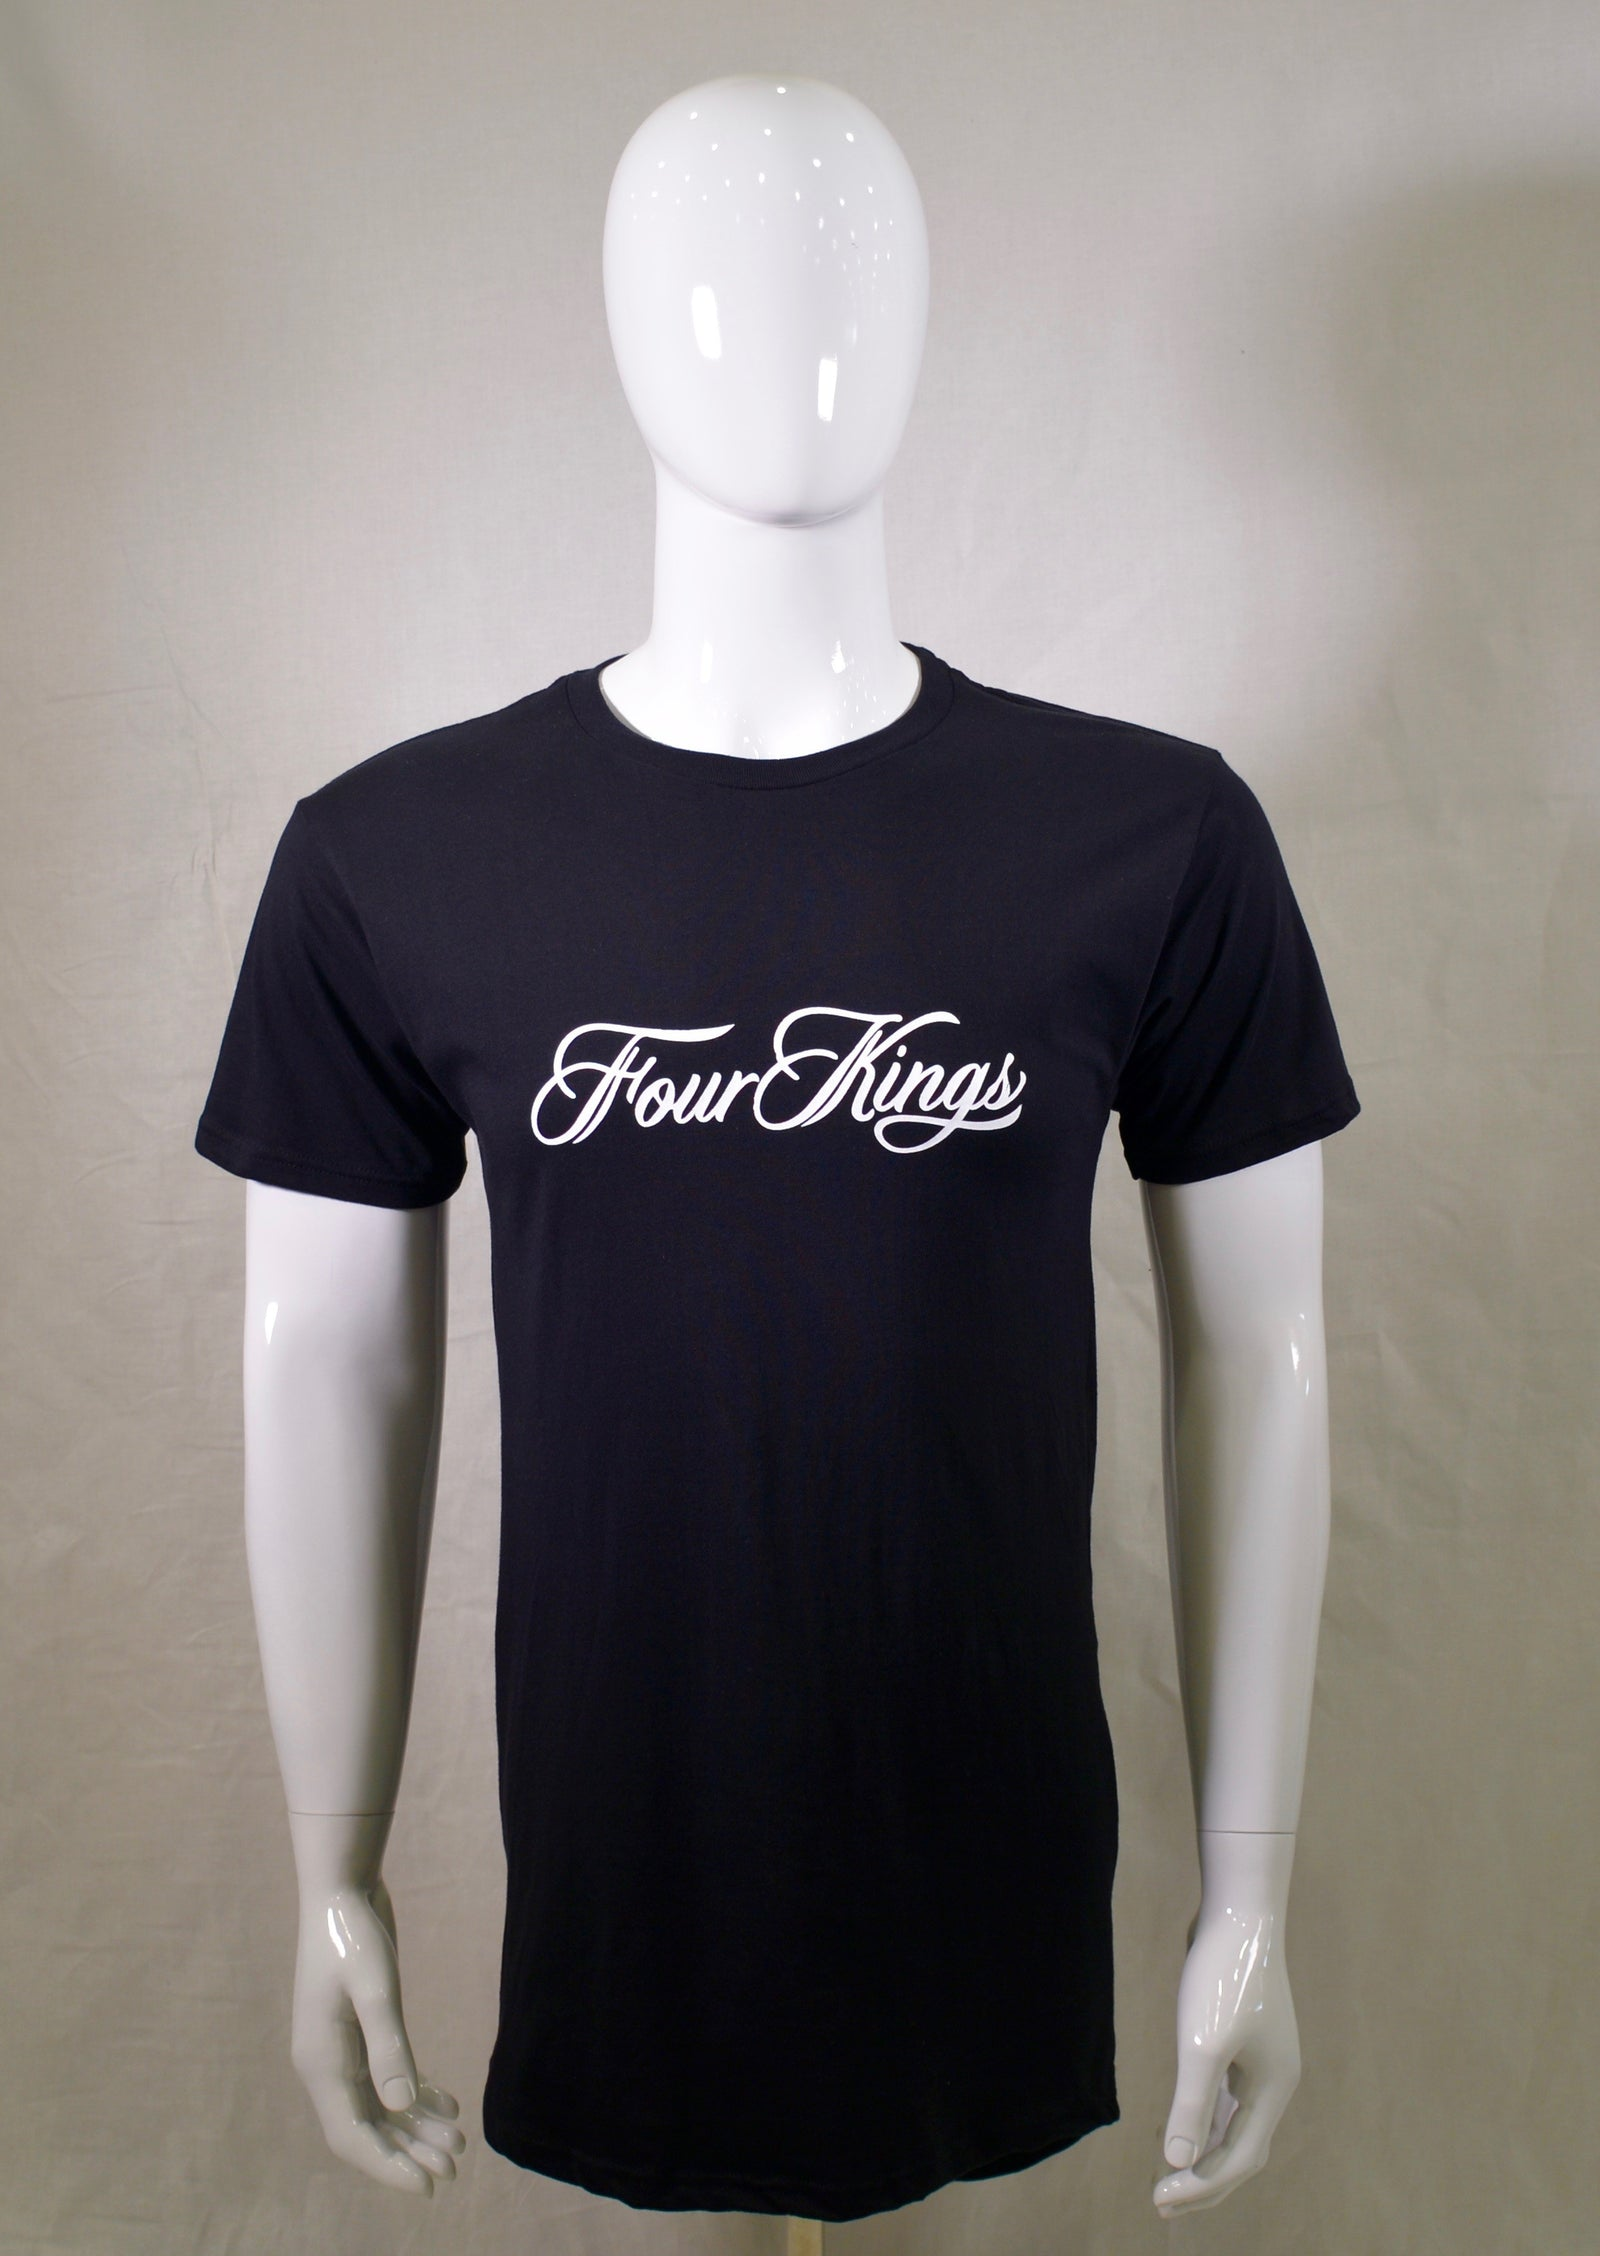 Four Kings Long Body Extendo Tee